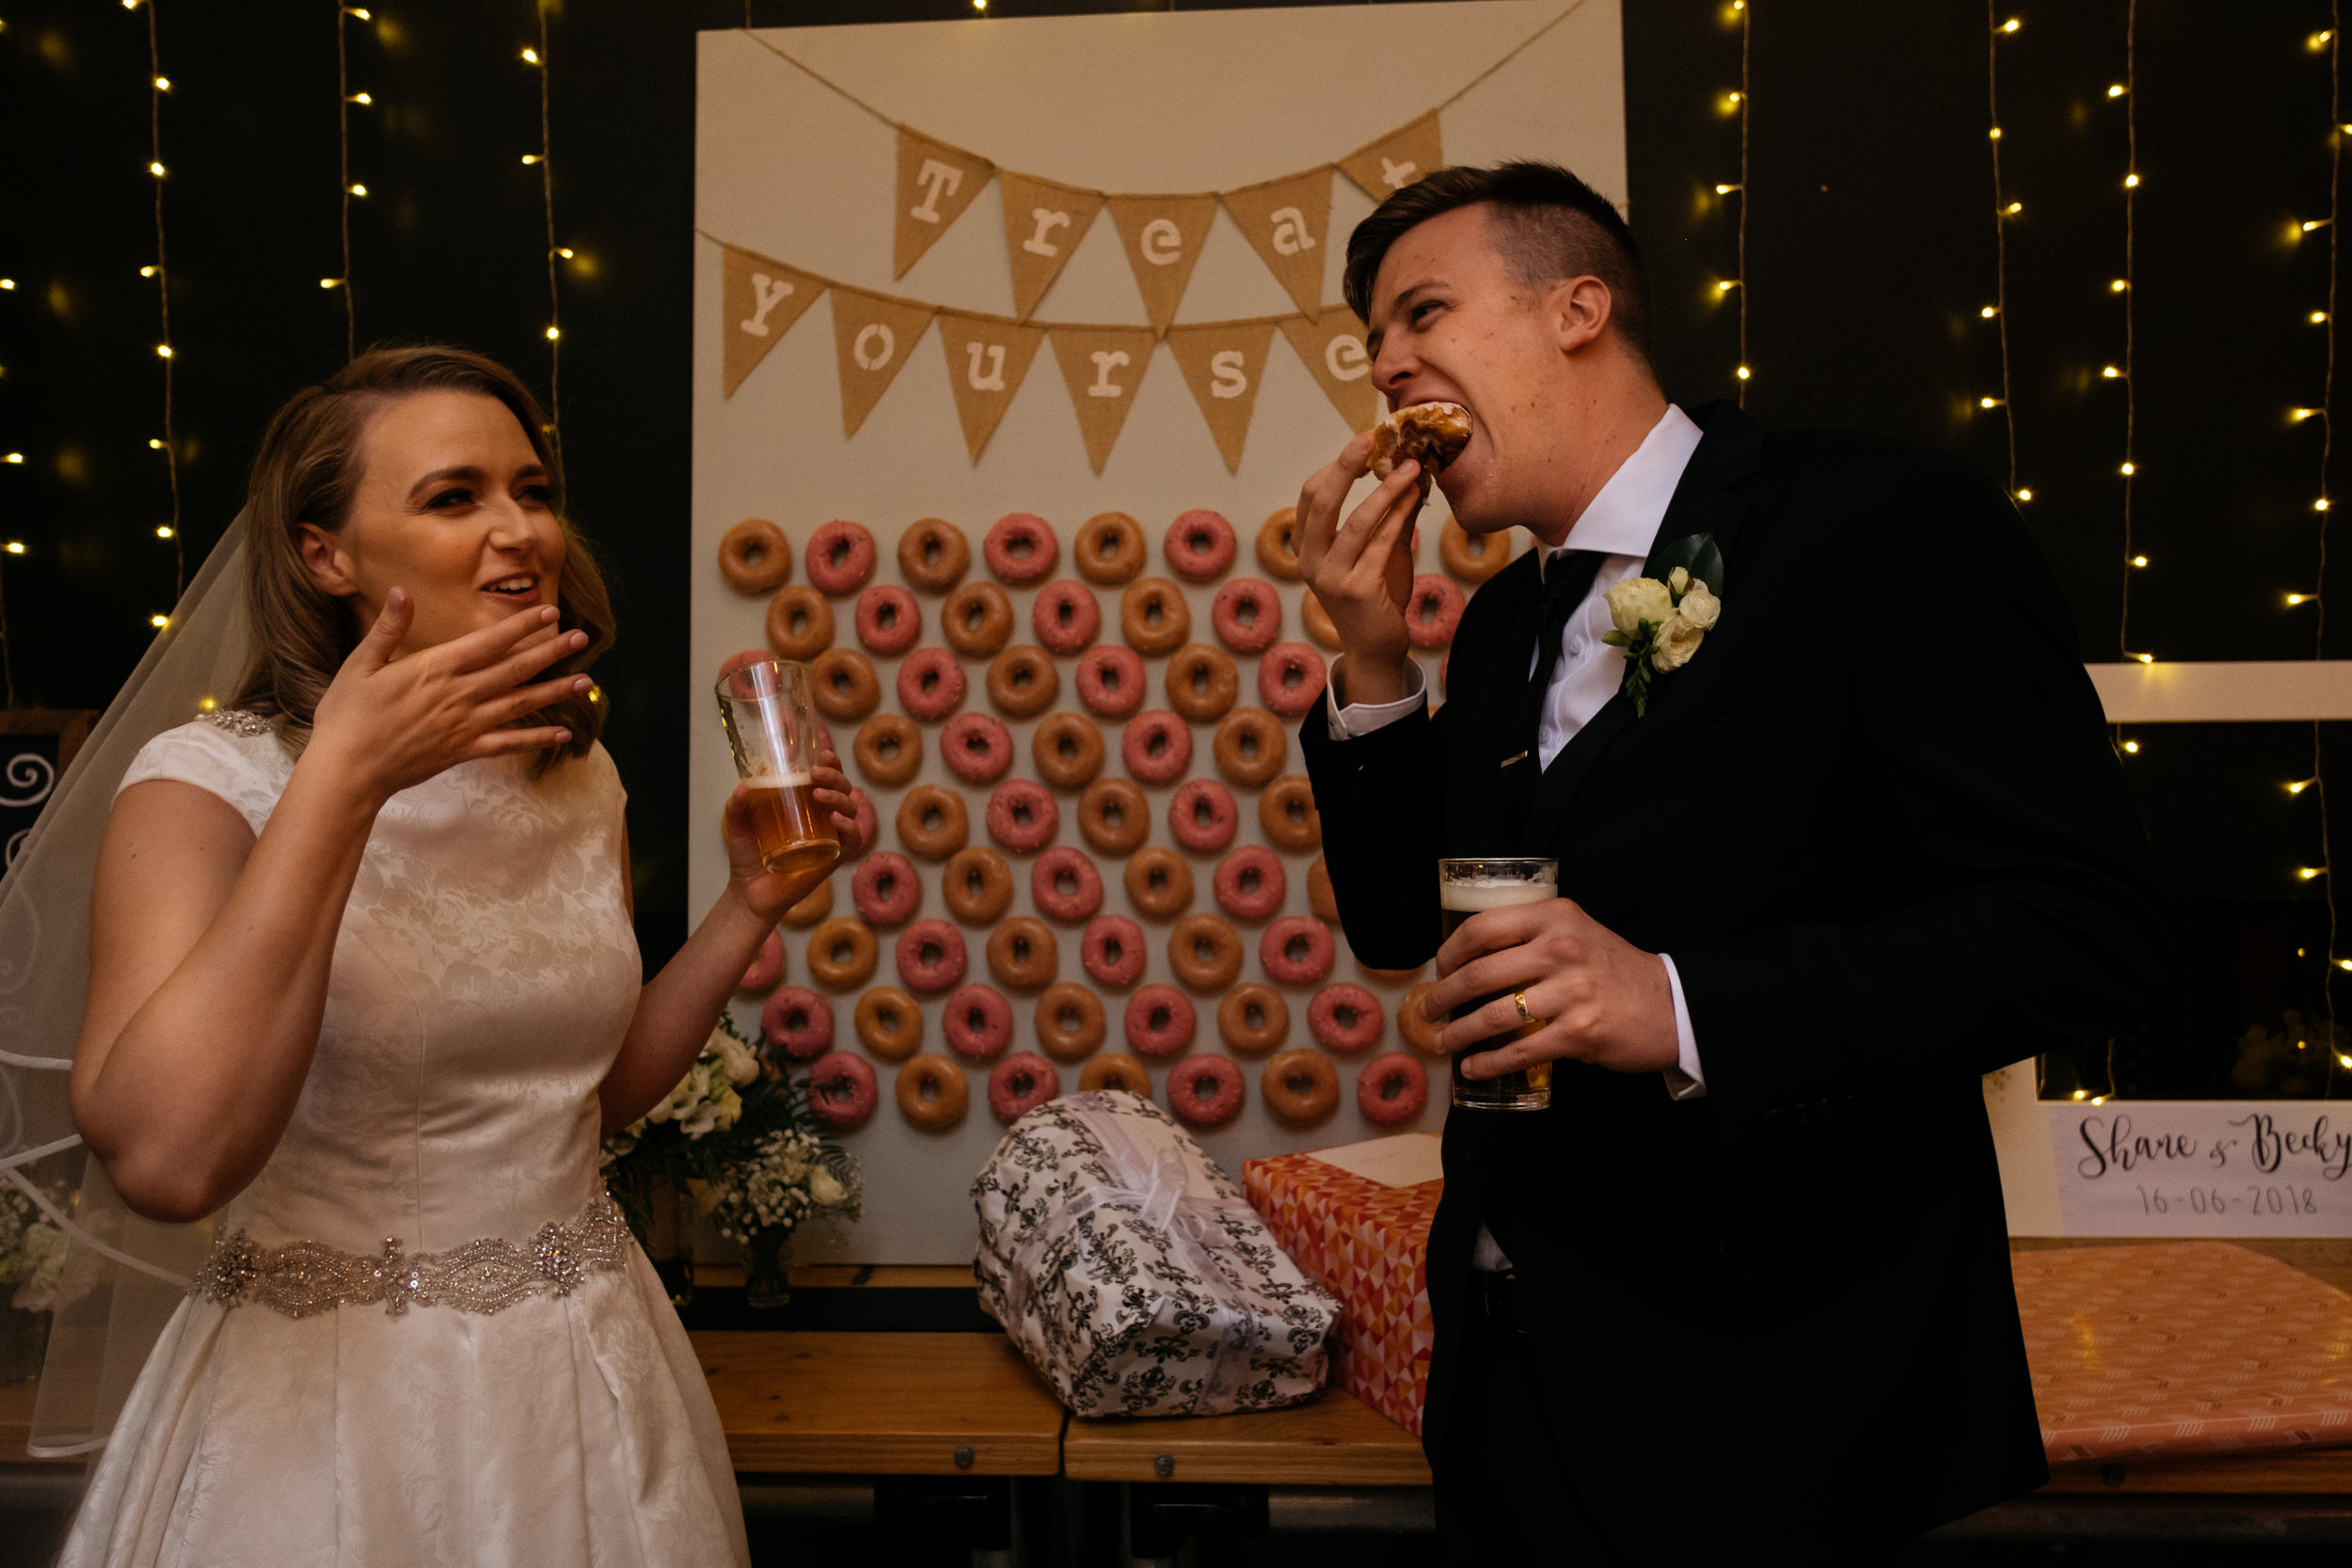 Bride and groom eating donuts after wedding ceremony